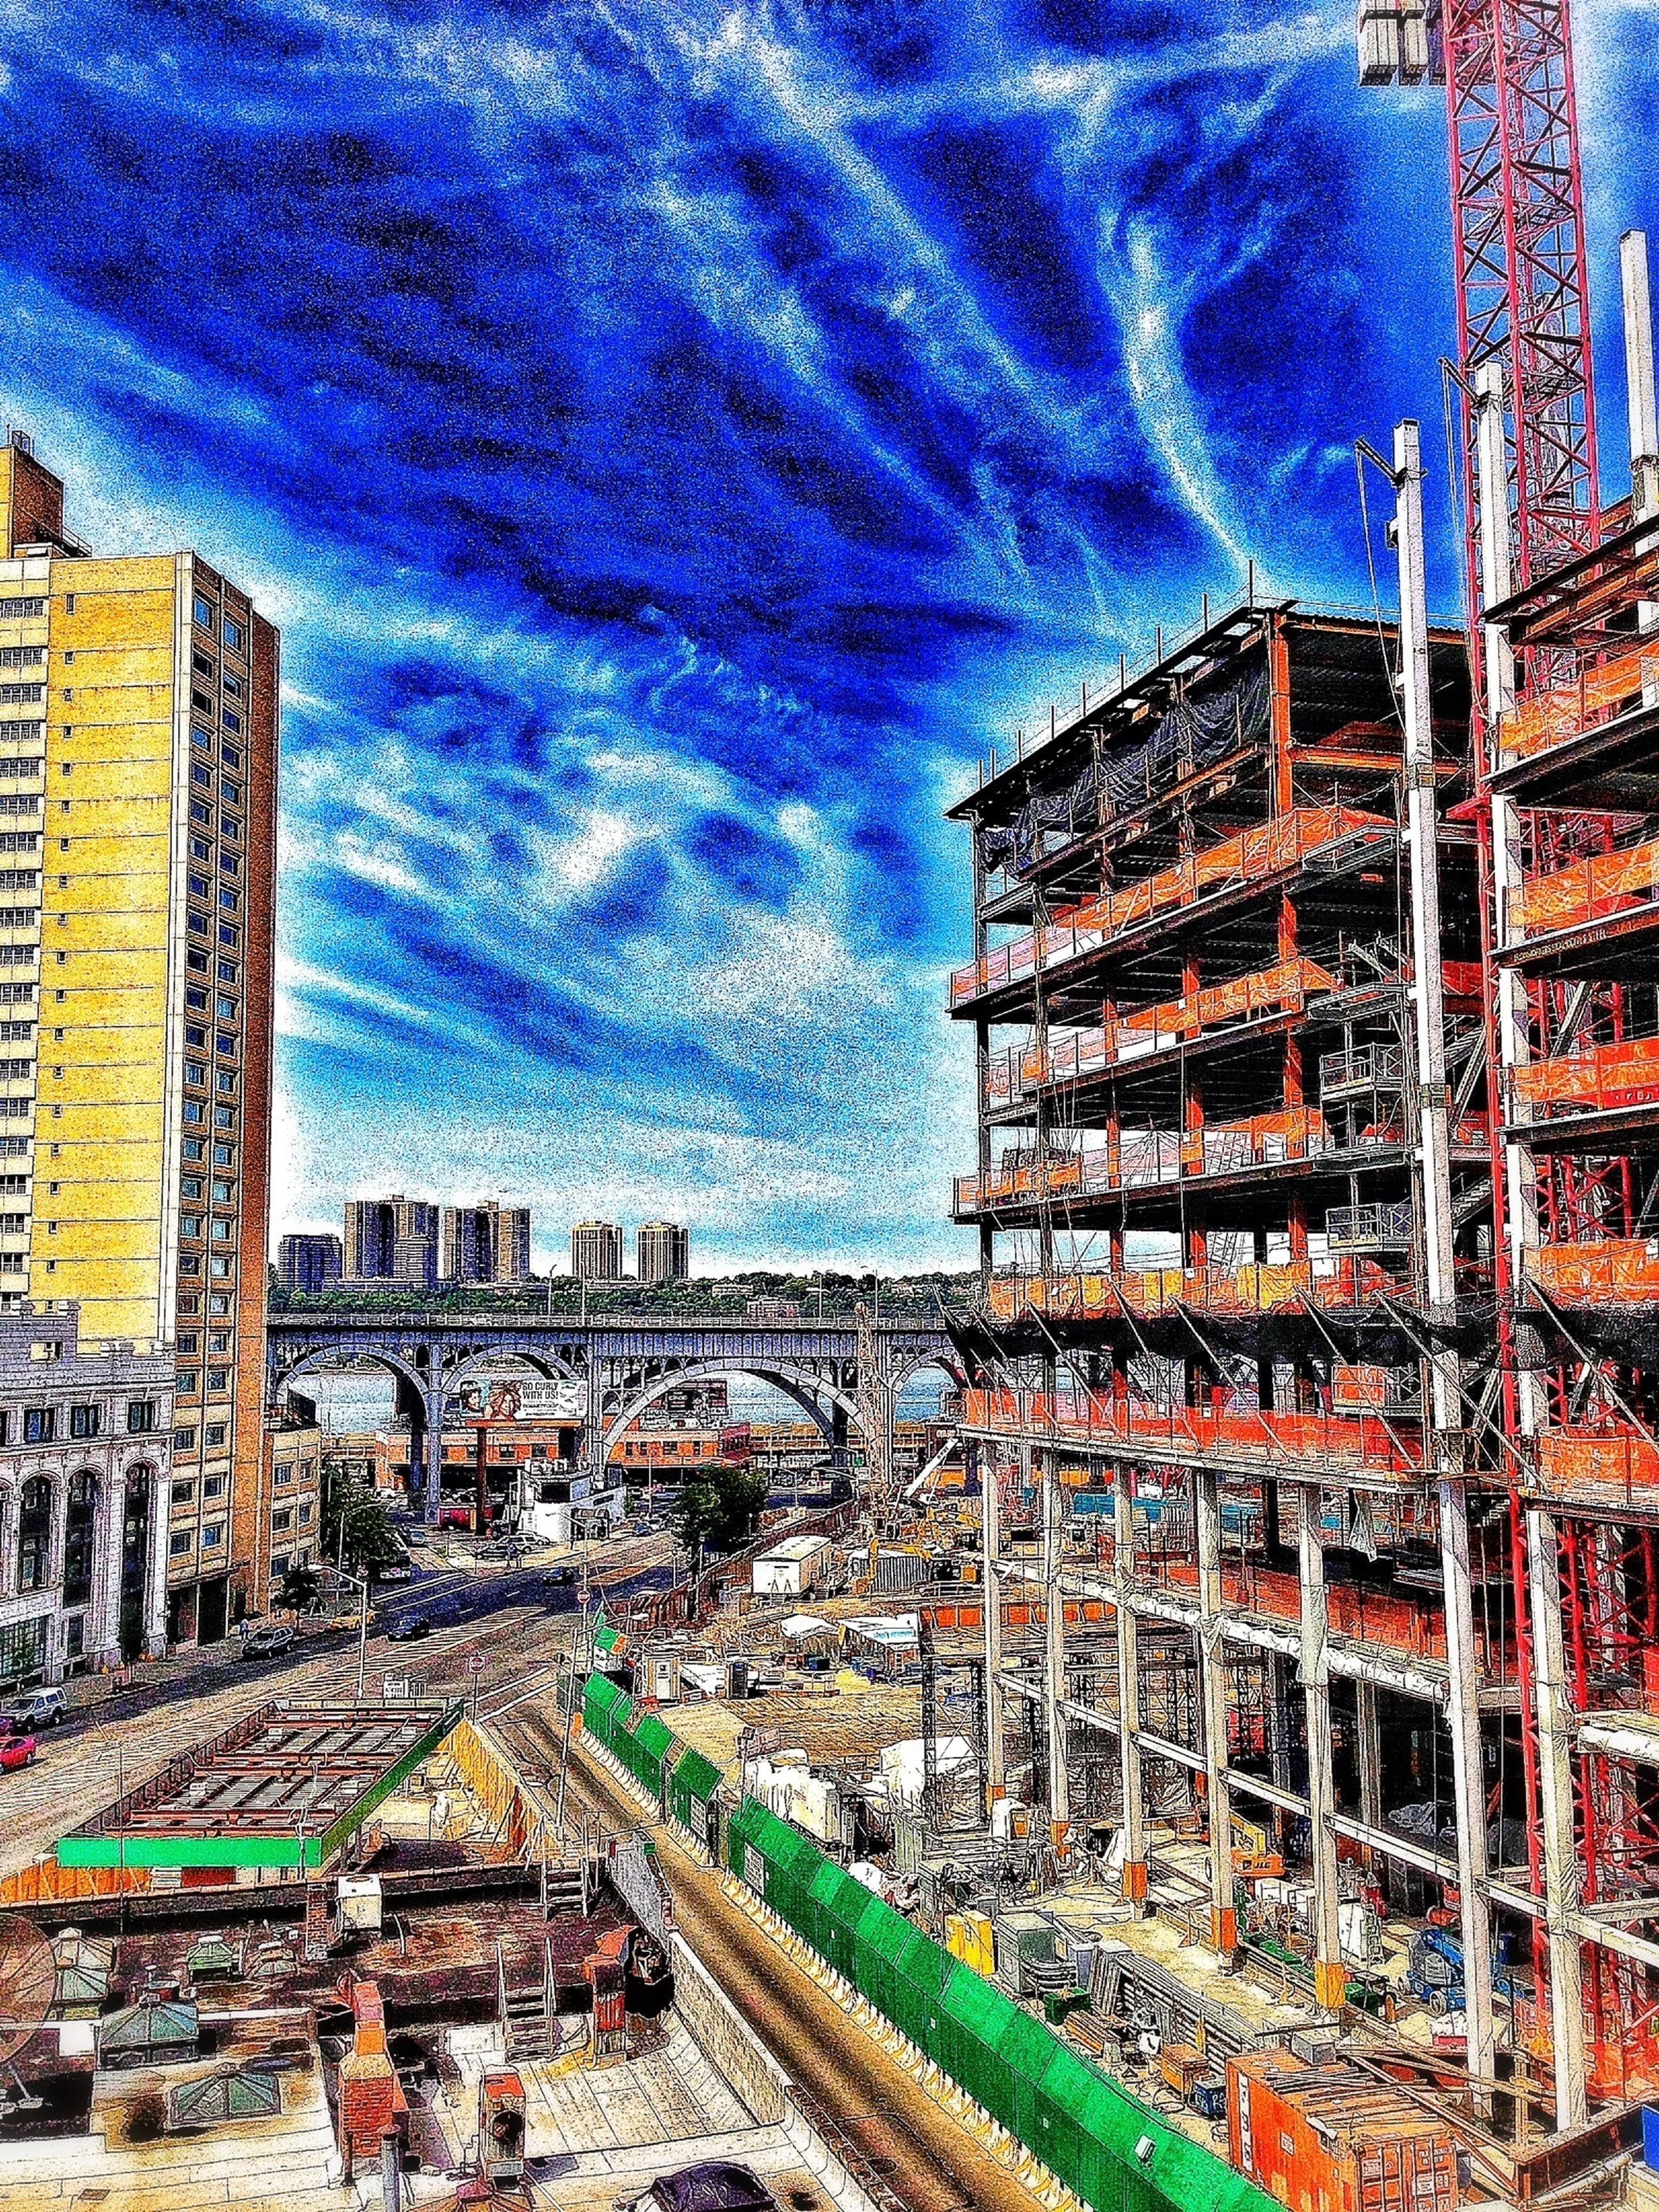 building exterior, architecture, built structure, city, sky, cloud - sky, cityscape, high angle view, cloudy, city life, residential building, street, outdoors, residential district, cloud, development, residential structure, construction site, road, transportation